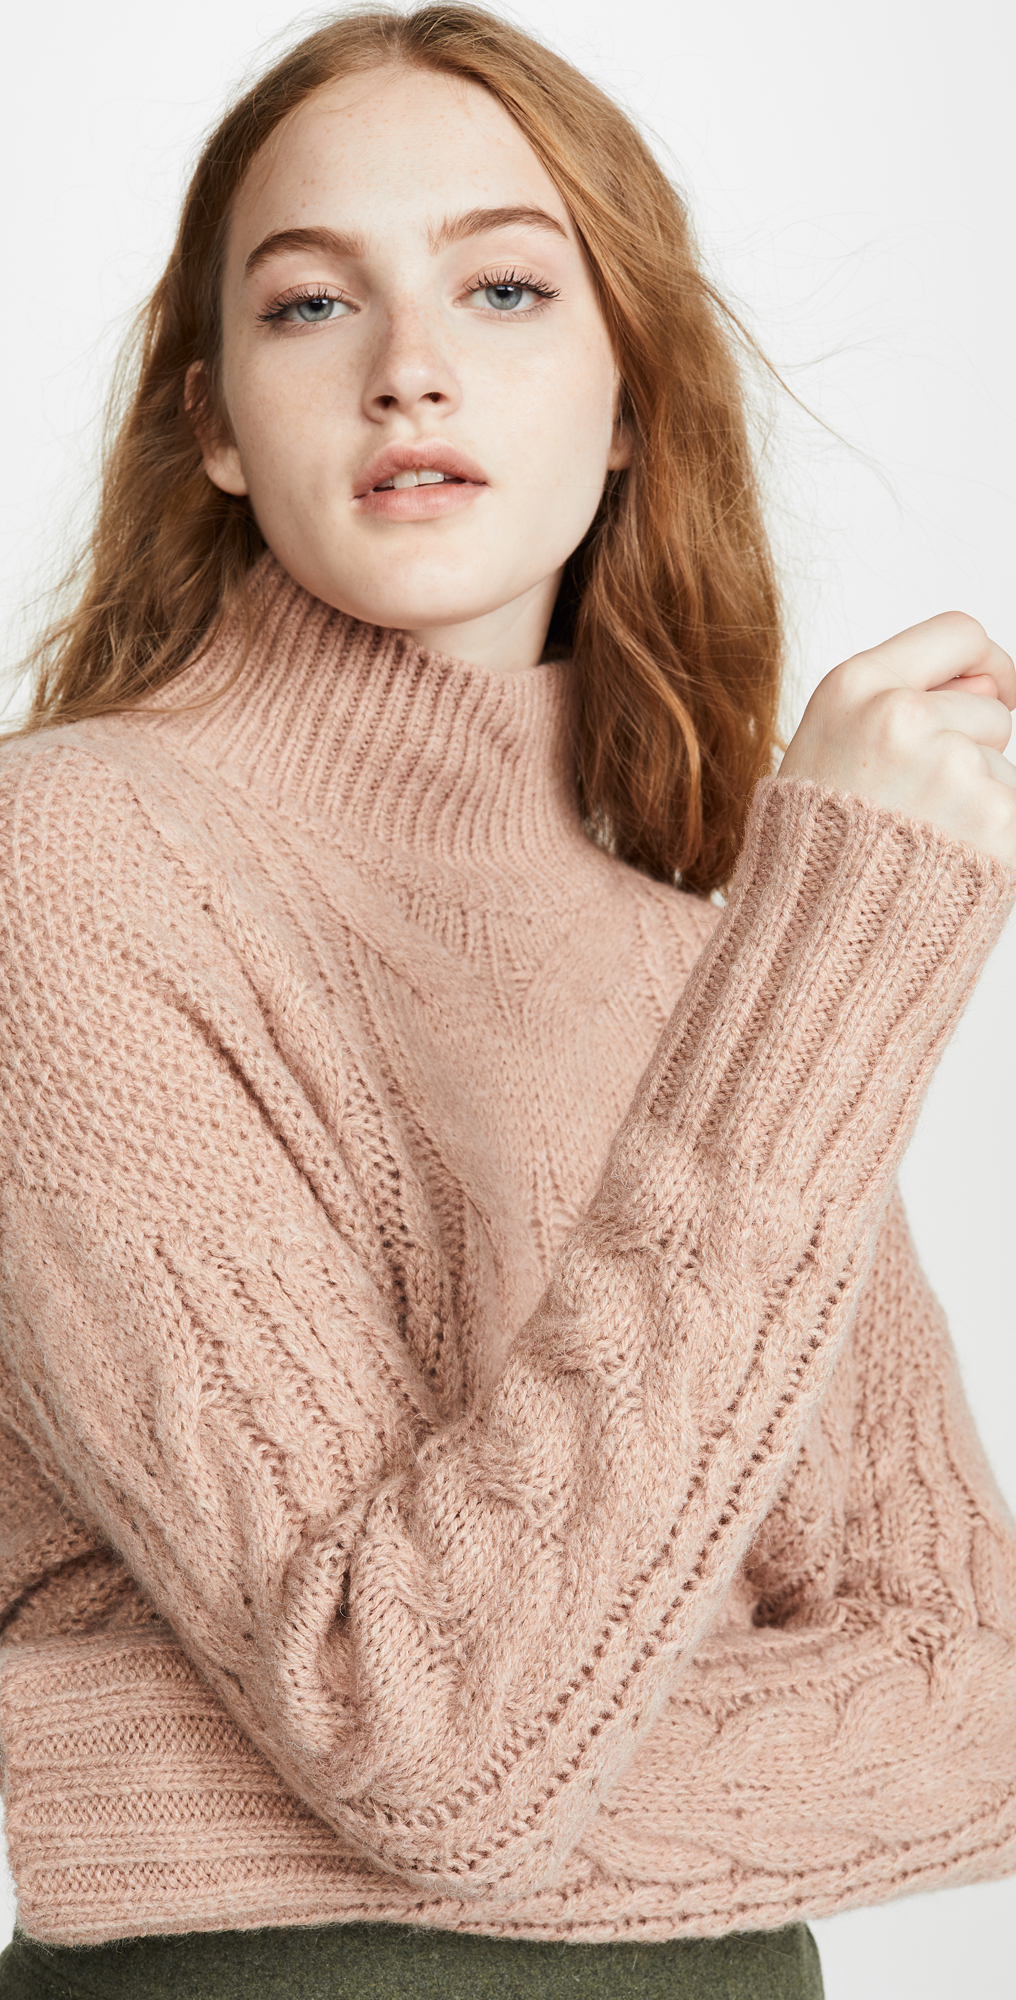 360 SWEATER Alexia Sweater | SHOPBOP | New To Sale Save Up